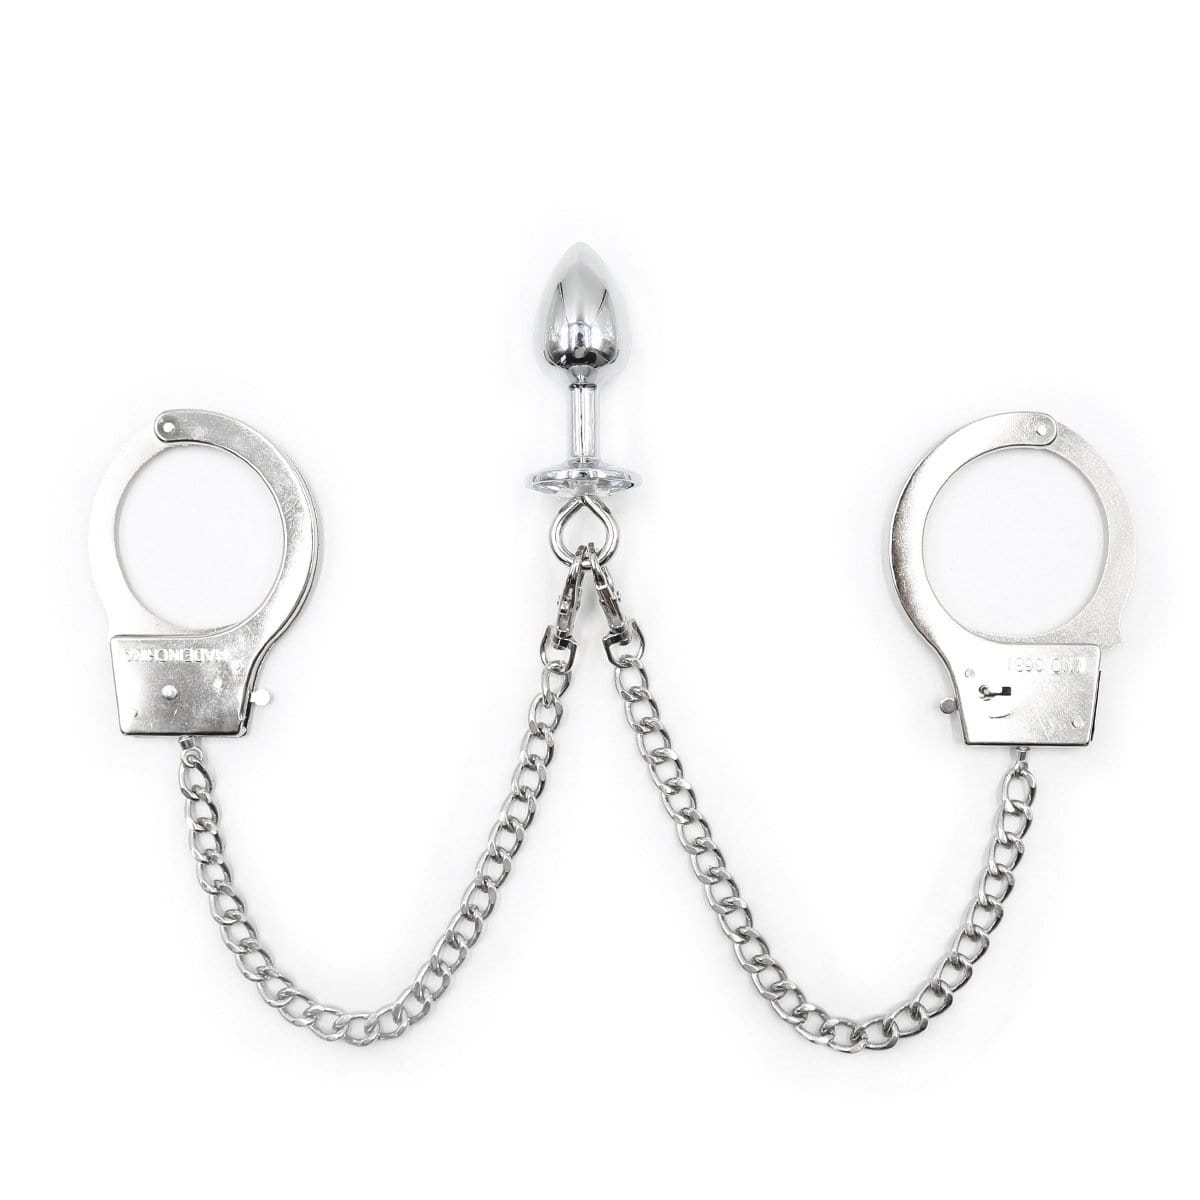 Handcuffs Attached to Crystal Base Butt Plug Set - Sale BDSM, Bondage Gear, Adult Toys, Bondage Sex, Orgasm Belt, Male Chastity, Bondage Gag. Bondage Slave Collars, Wrist Cuffs, Submissive, Dominant, Master, Mistress, Cross Dressing, Sex Toys, Bondage Sale, Bondage Clearance, MEGA Deal Bondage, Sub-Shop Bondage and Fetish Superstore